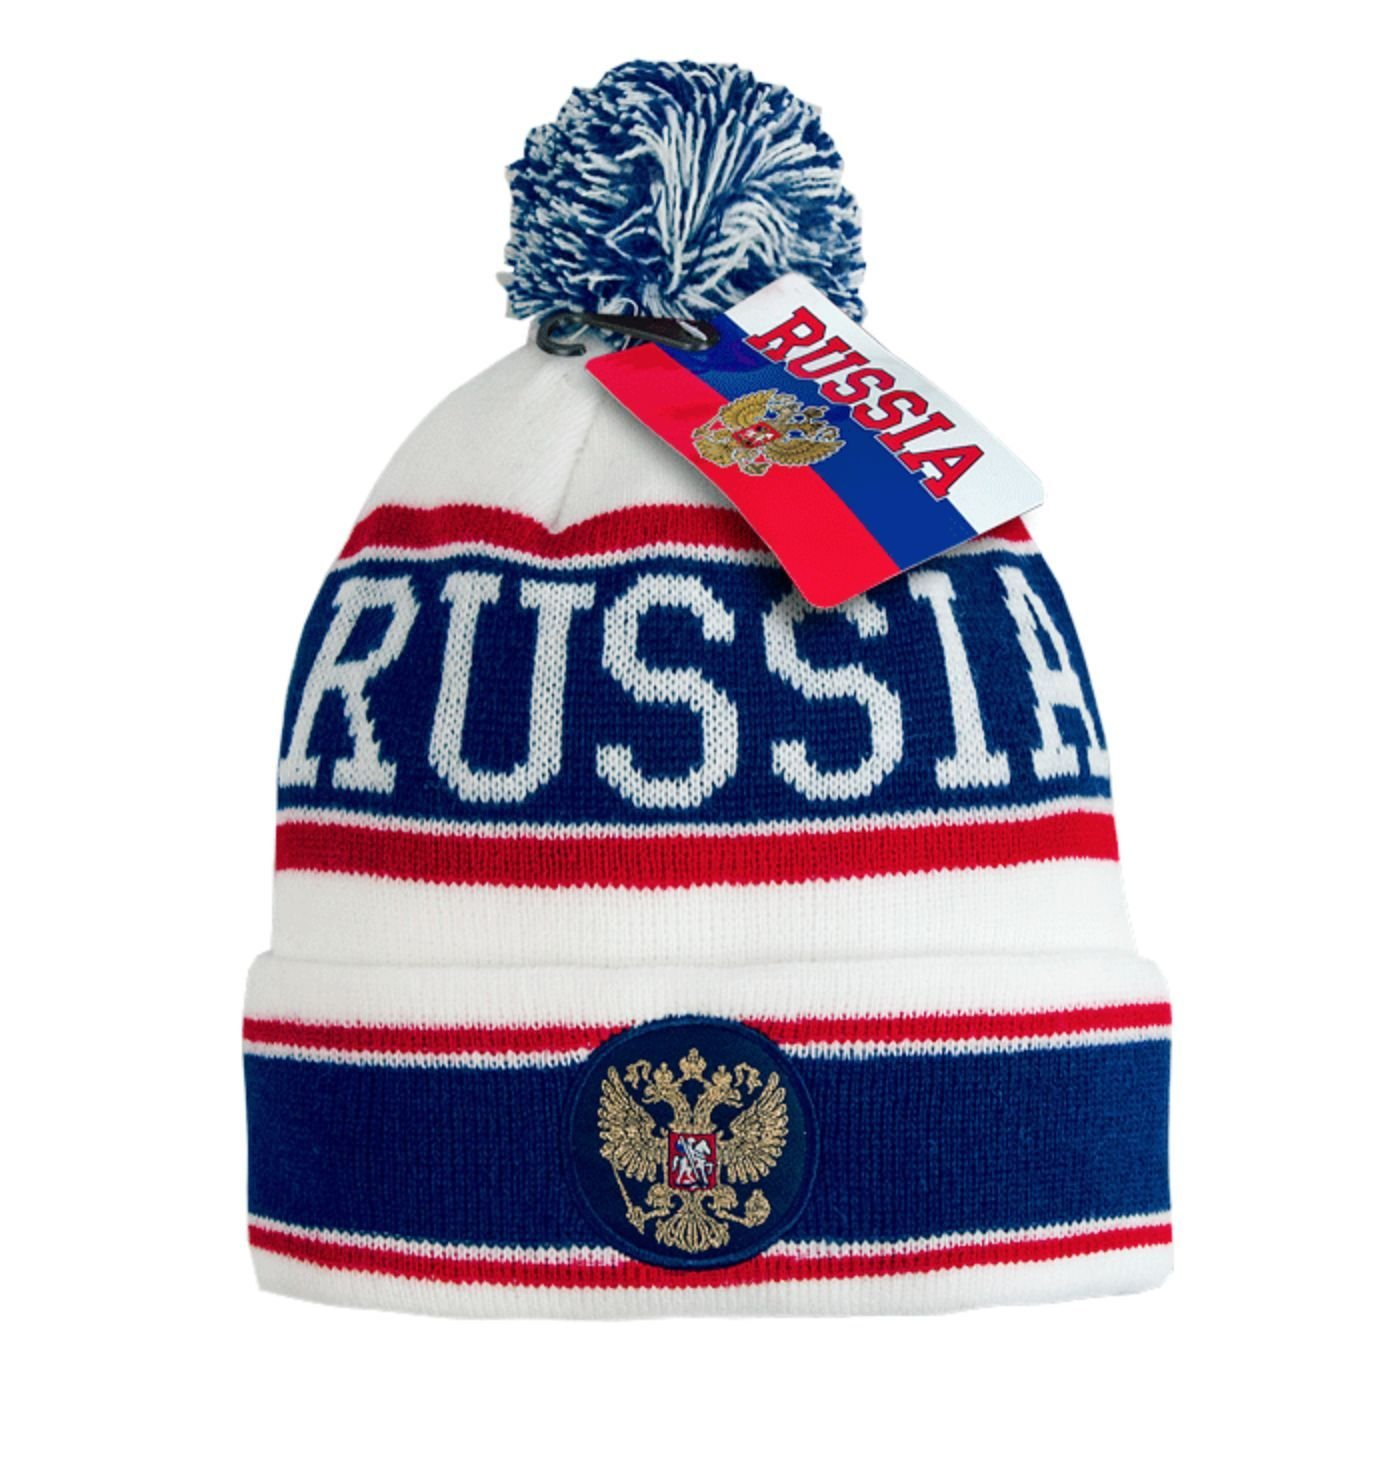 Russia cuffed knit beanie hat with pom, Russian coat of arms, embroidery patch, white/navy L/XL